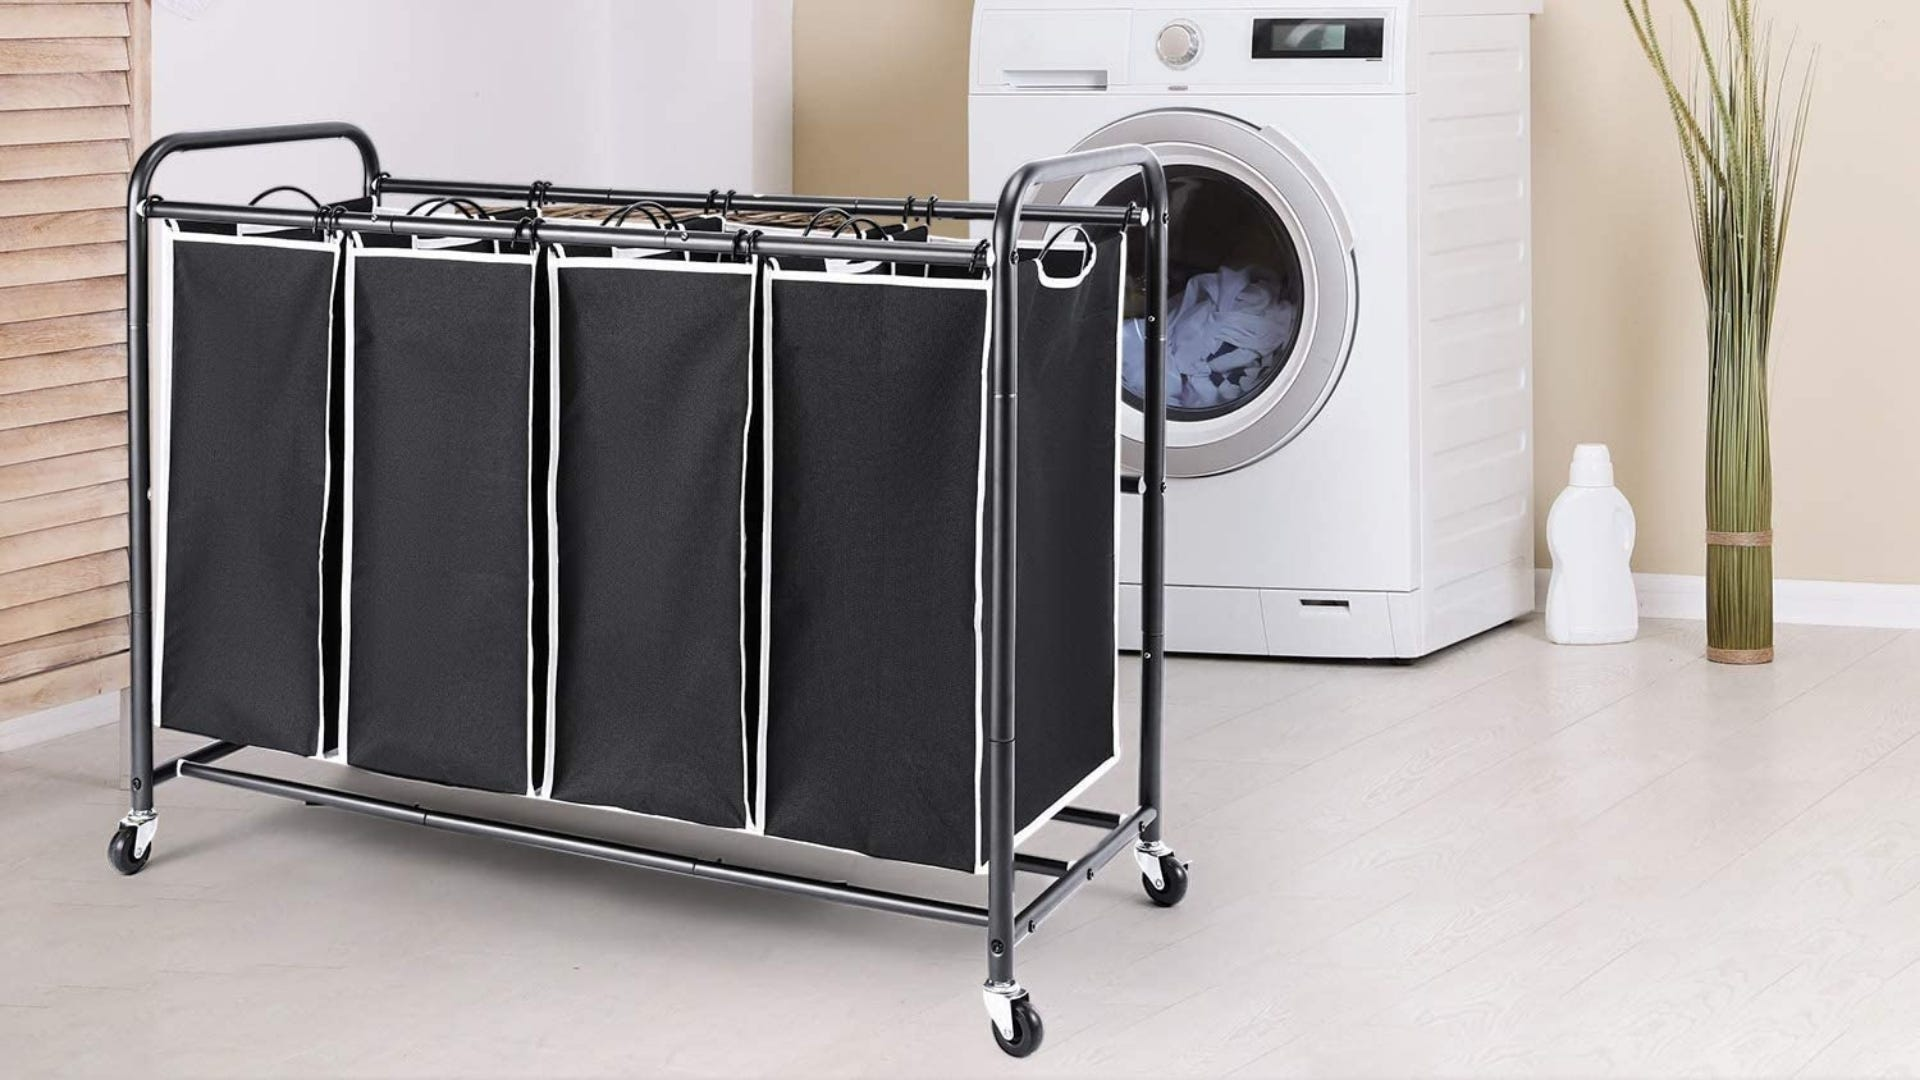 Four section laundry basket.